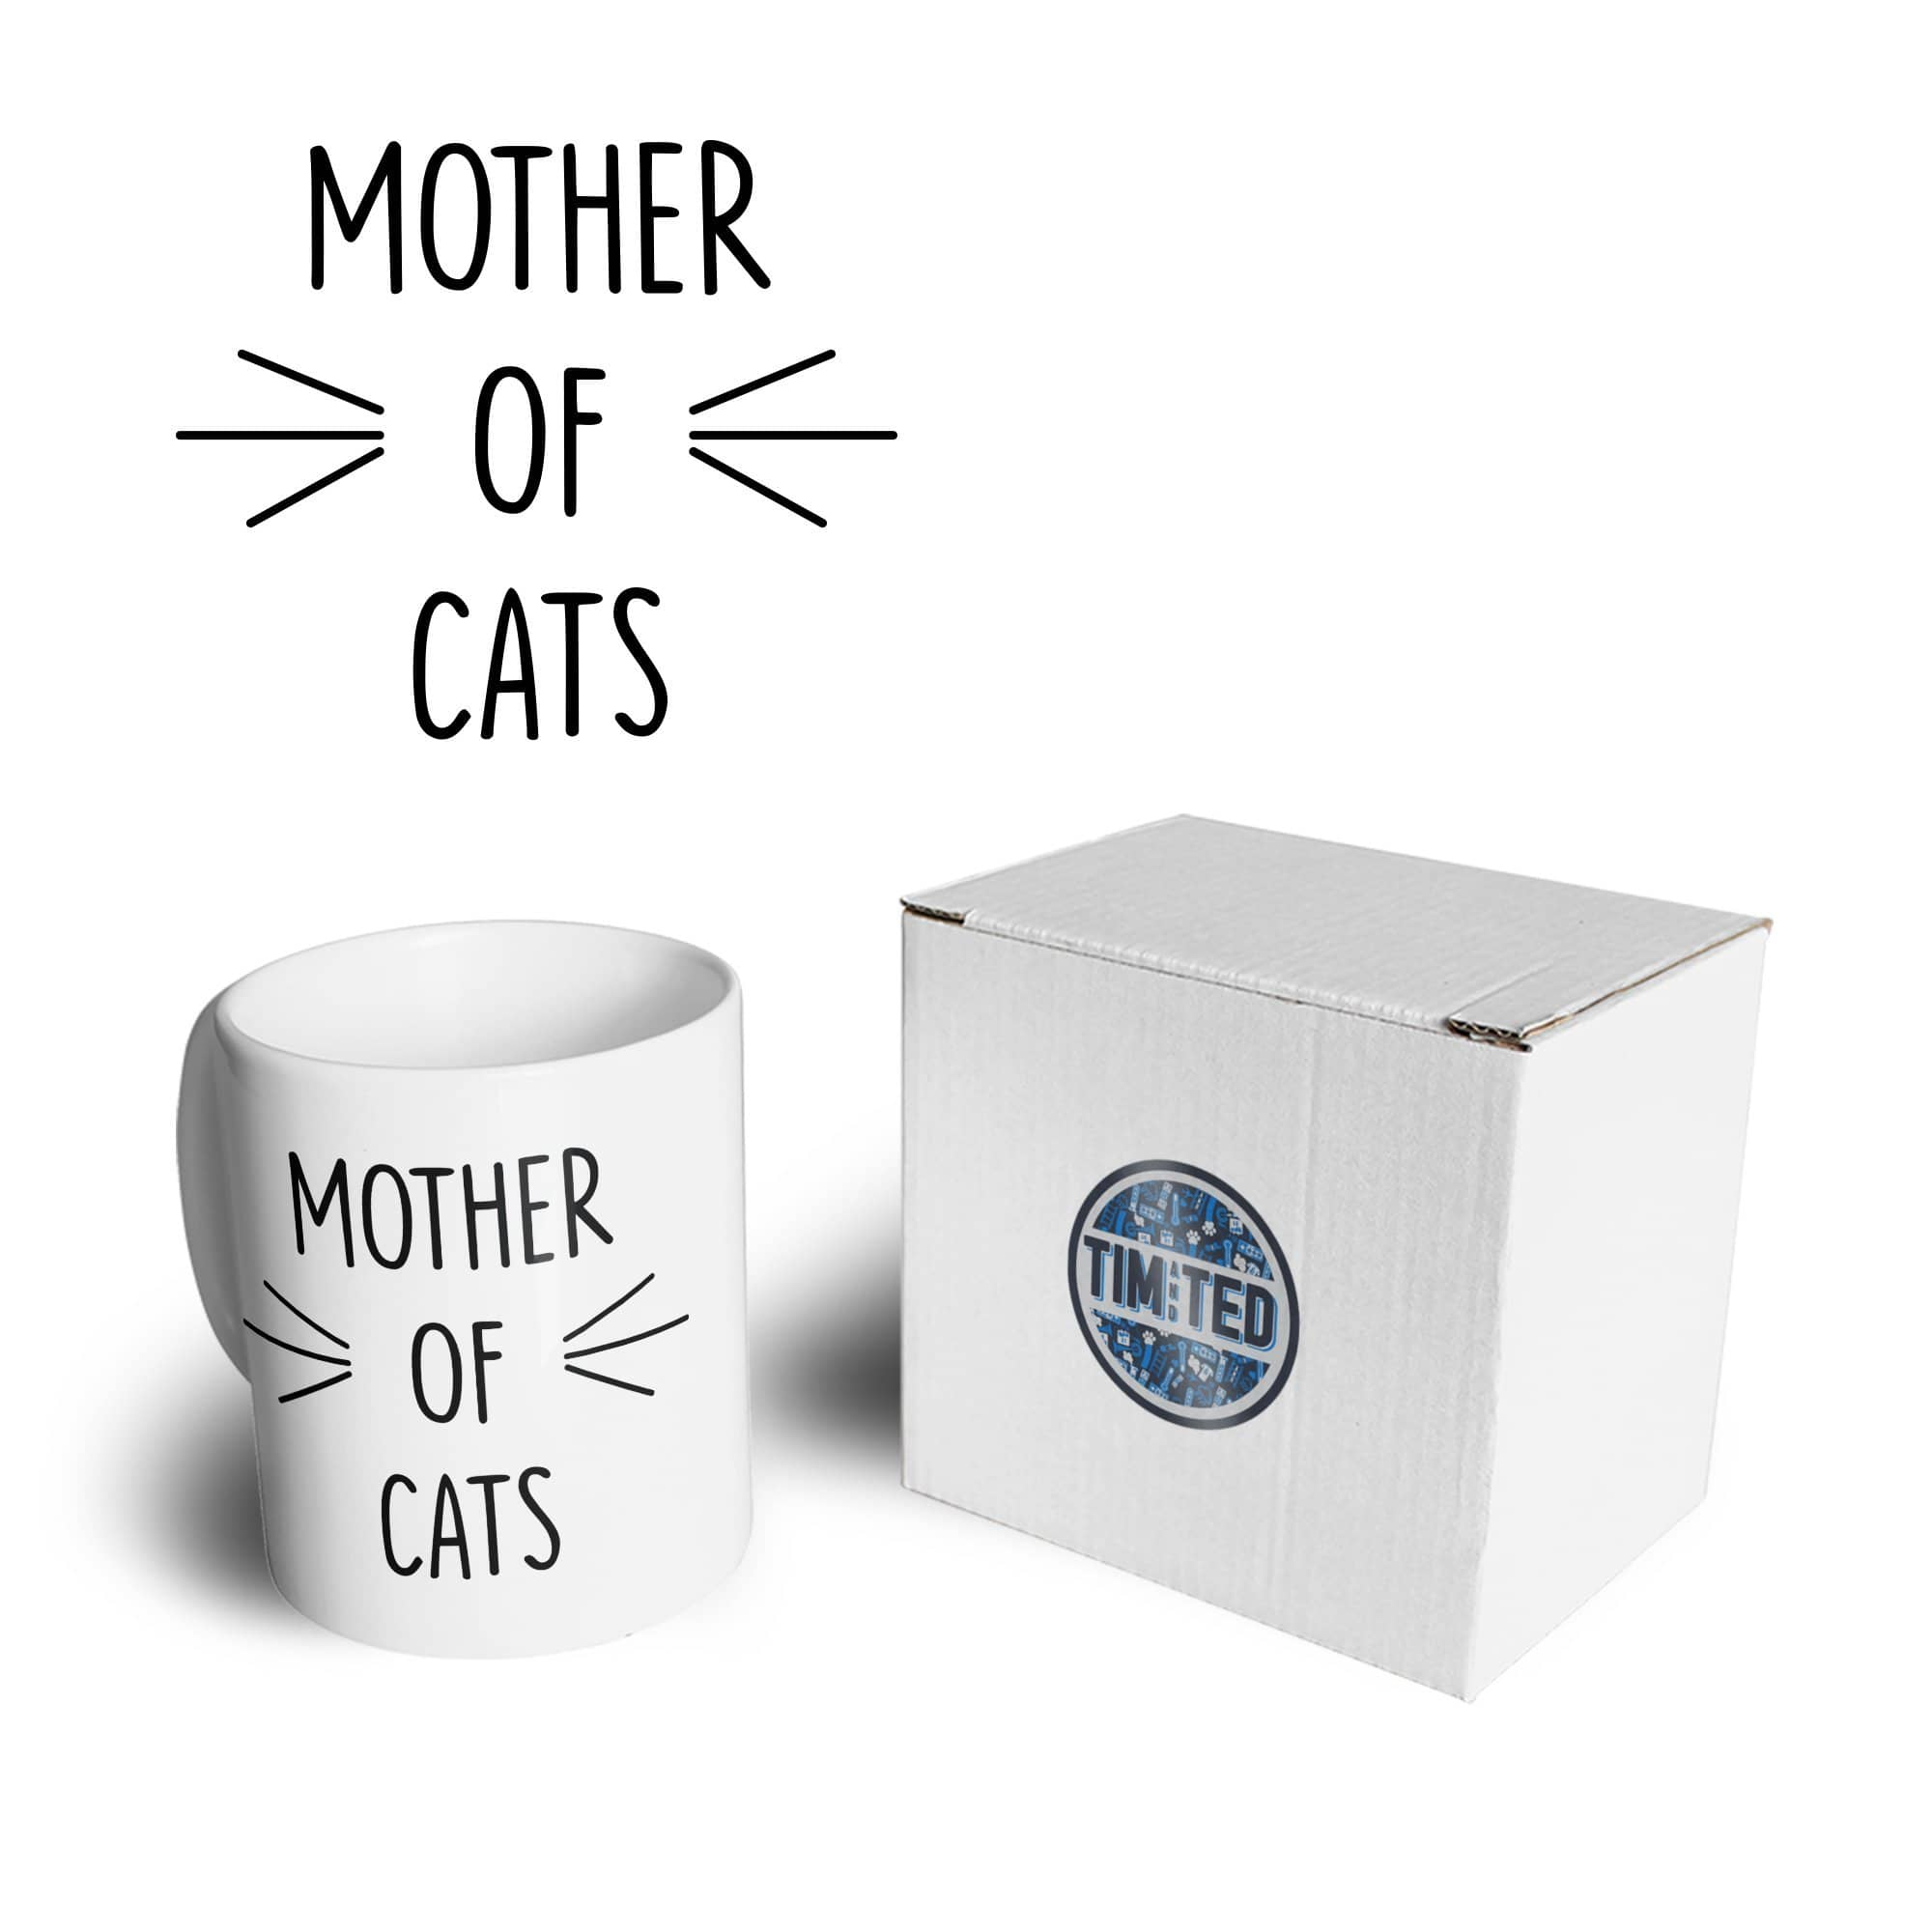 Funny Pet Tea Cup Mug Mother Of Cats Novelty Slogan